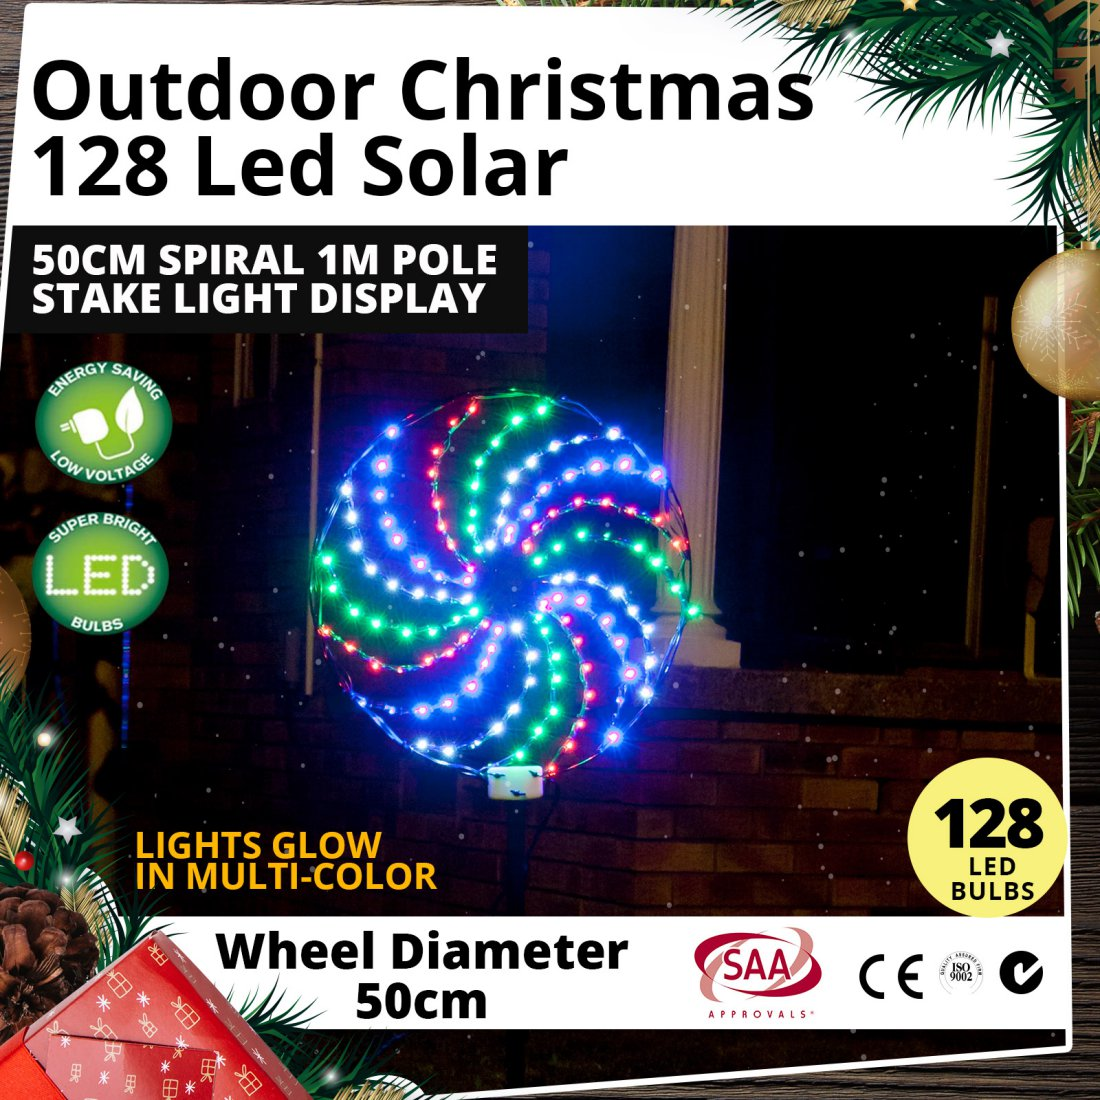 Outdoor 128 LED Solar 50cm Spiral 1m Pole Stake Christmas Light Display